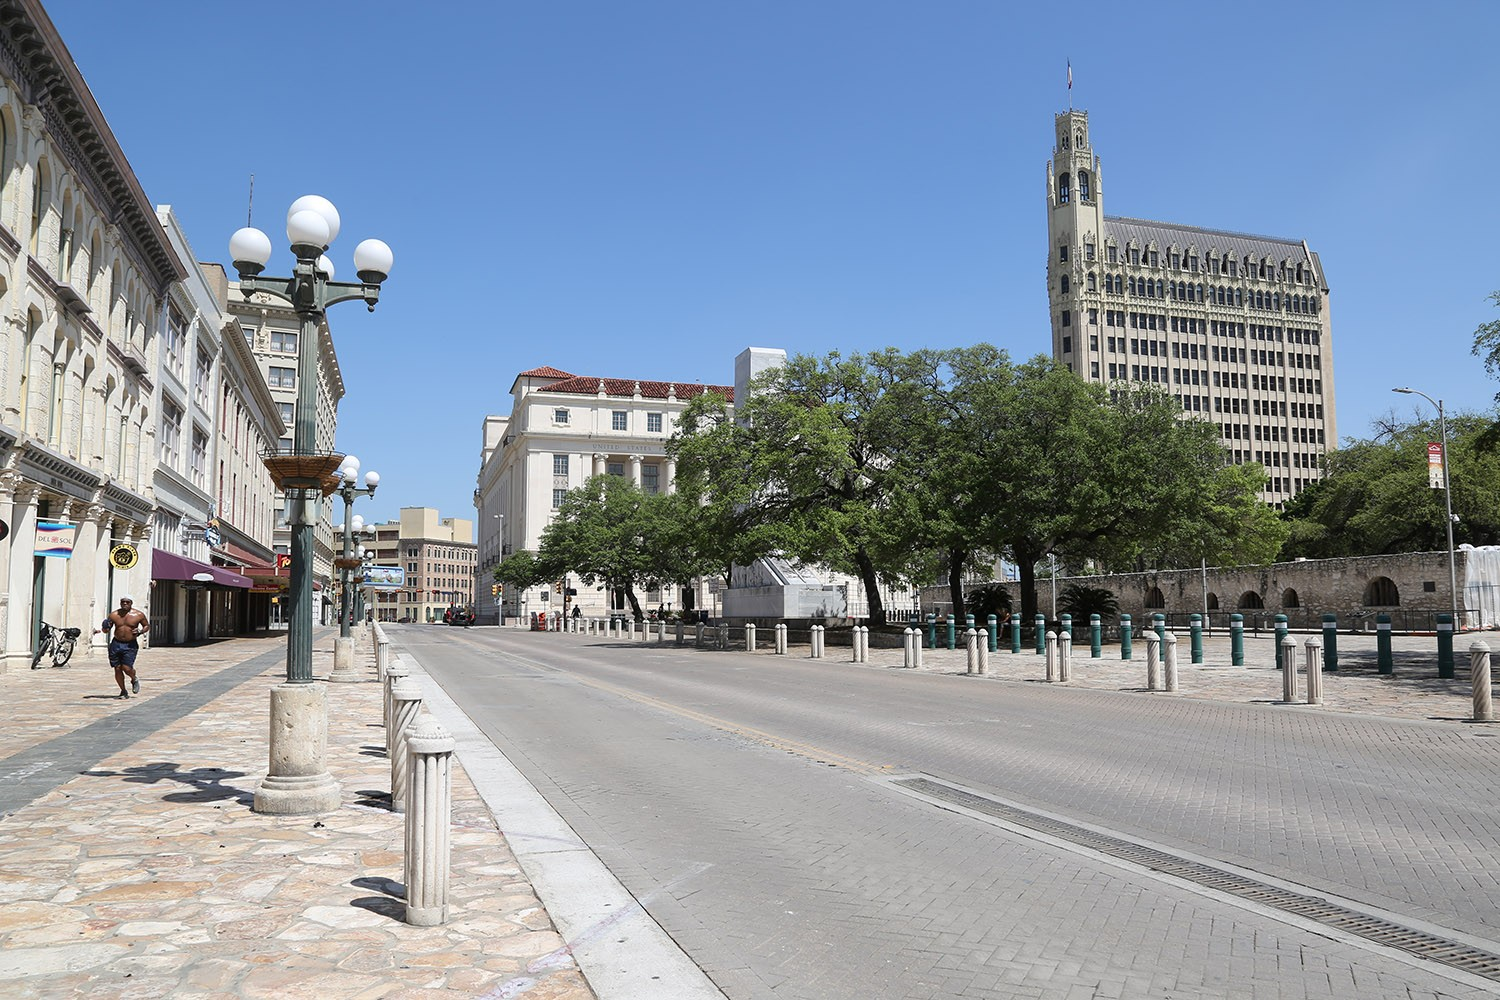 Alamo Plaza is nearly empty on Tuesday, March 24, 2020 amid coronavirus pandemic. <b><em>Photo by Ben Olivo | Heron</em></b>